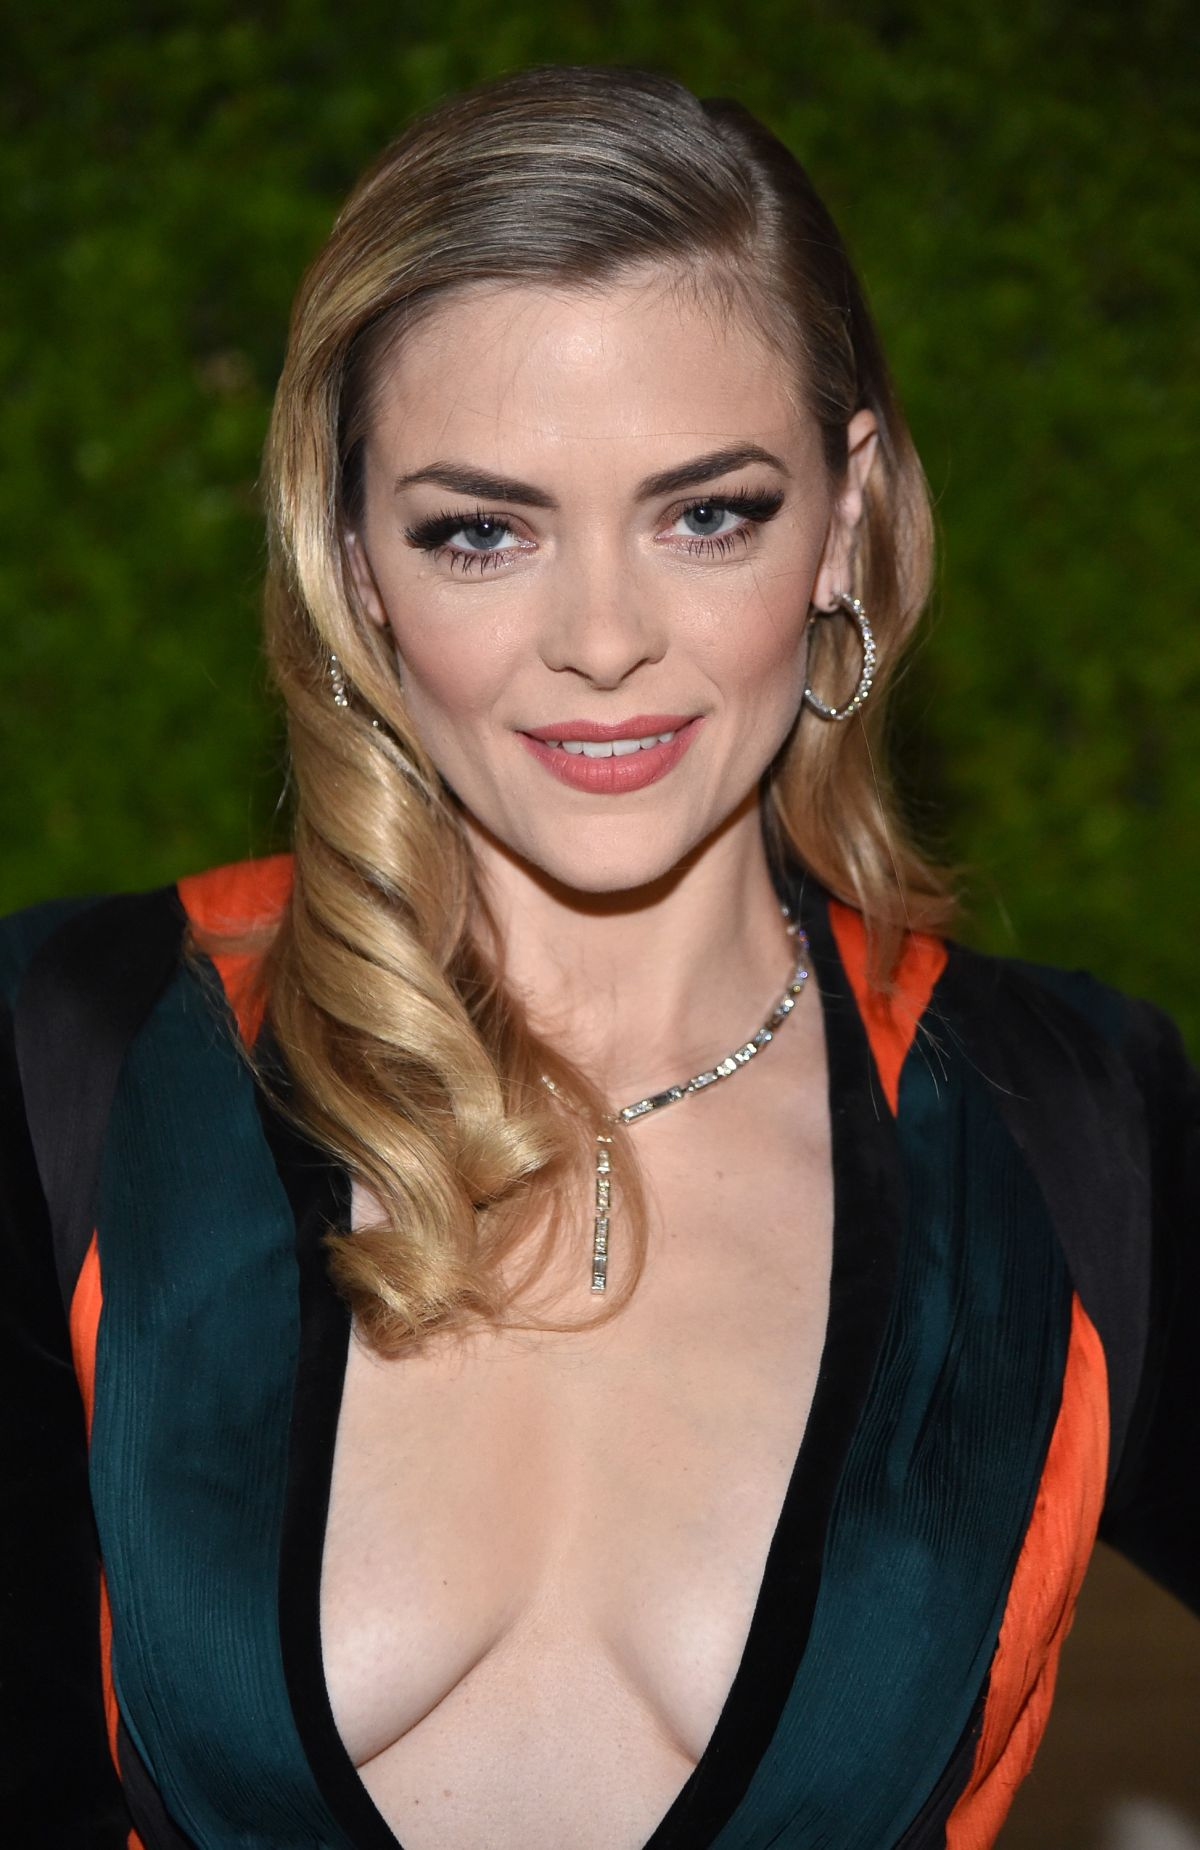 Jaime King Net Worth